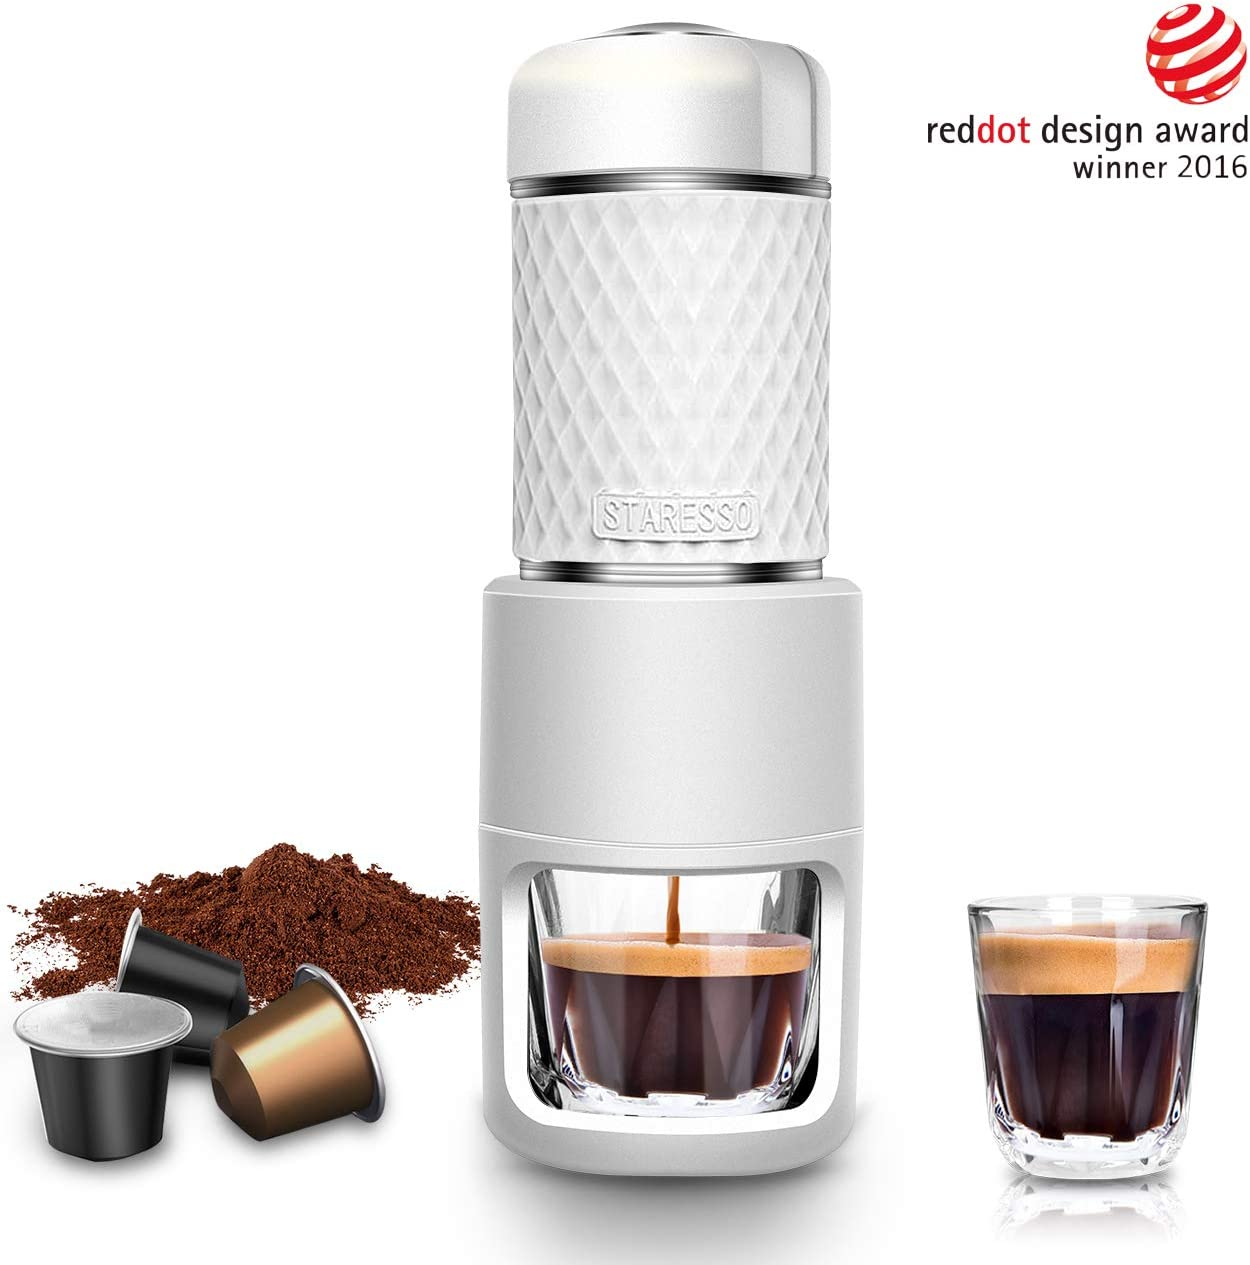 STARESSO Portable Espresso Maker – Mini Espresso Machine with BPA-Free Material for Rich Thick Crema Manual Espresso Compatible with Nespresso Pods Ground Coffee Compact Travel Coffee Maker